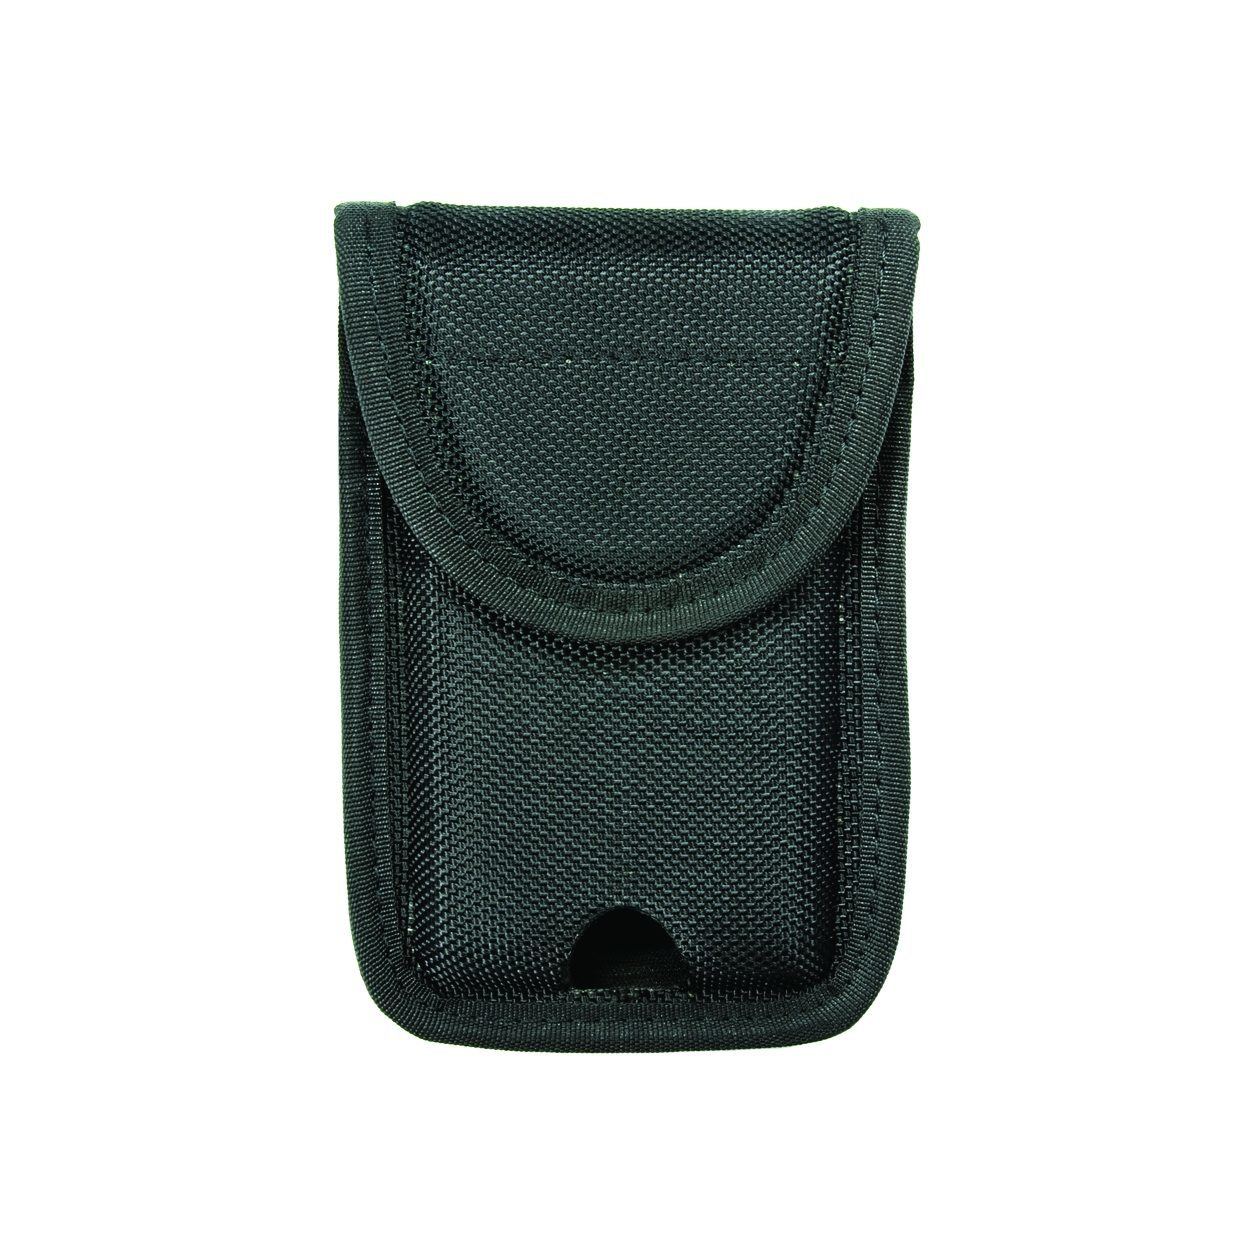 iPhone Case (3&4) - Closed - Ballistic